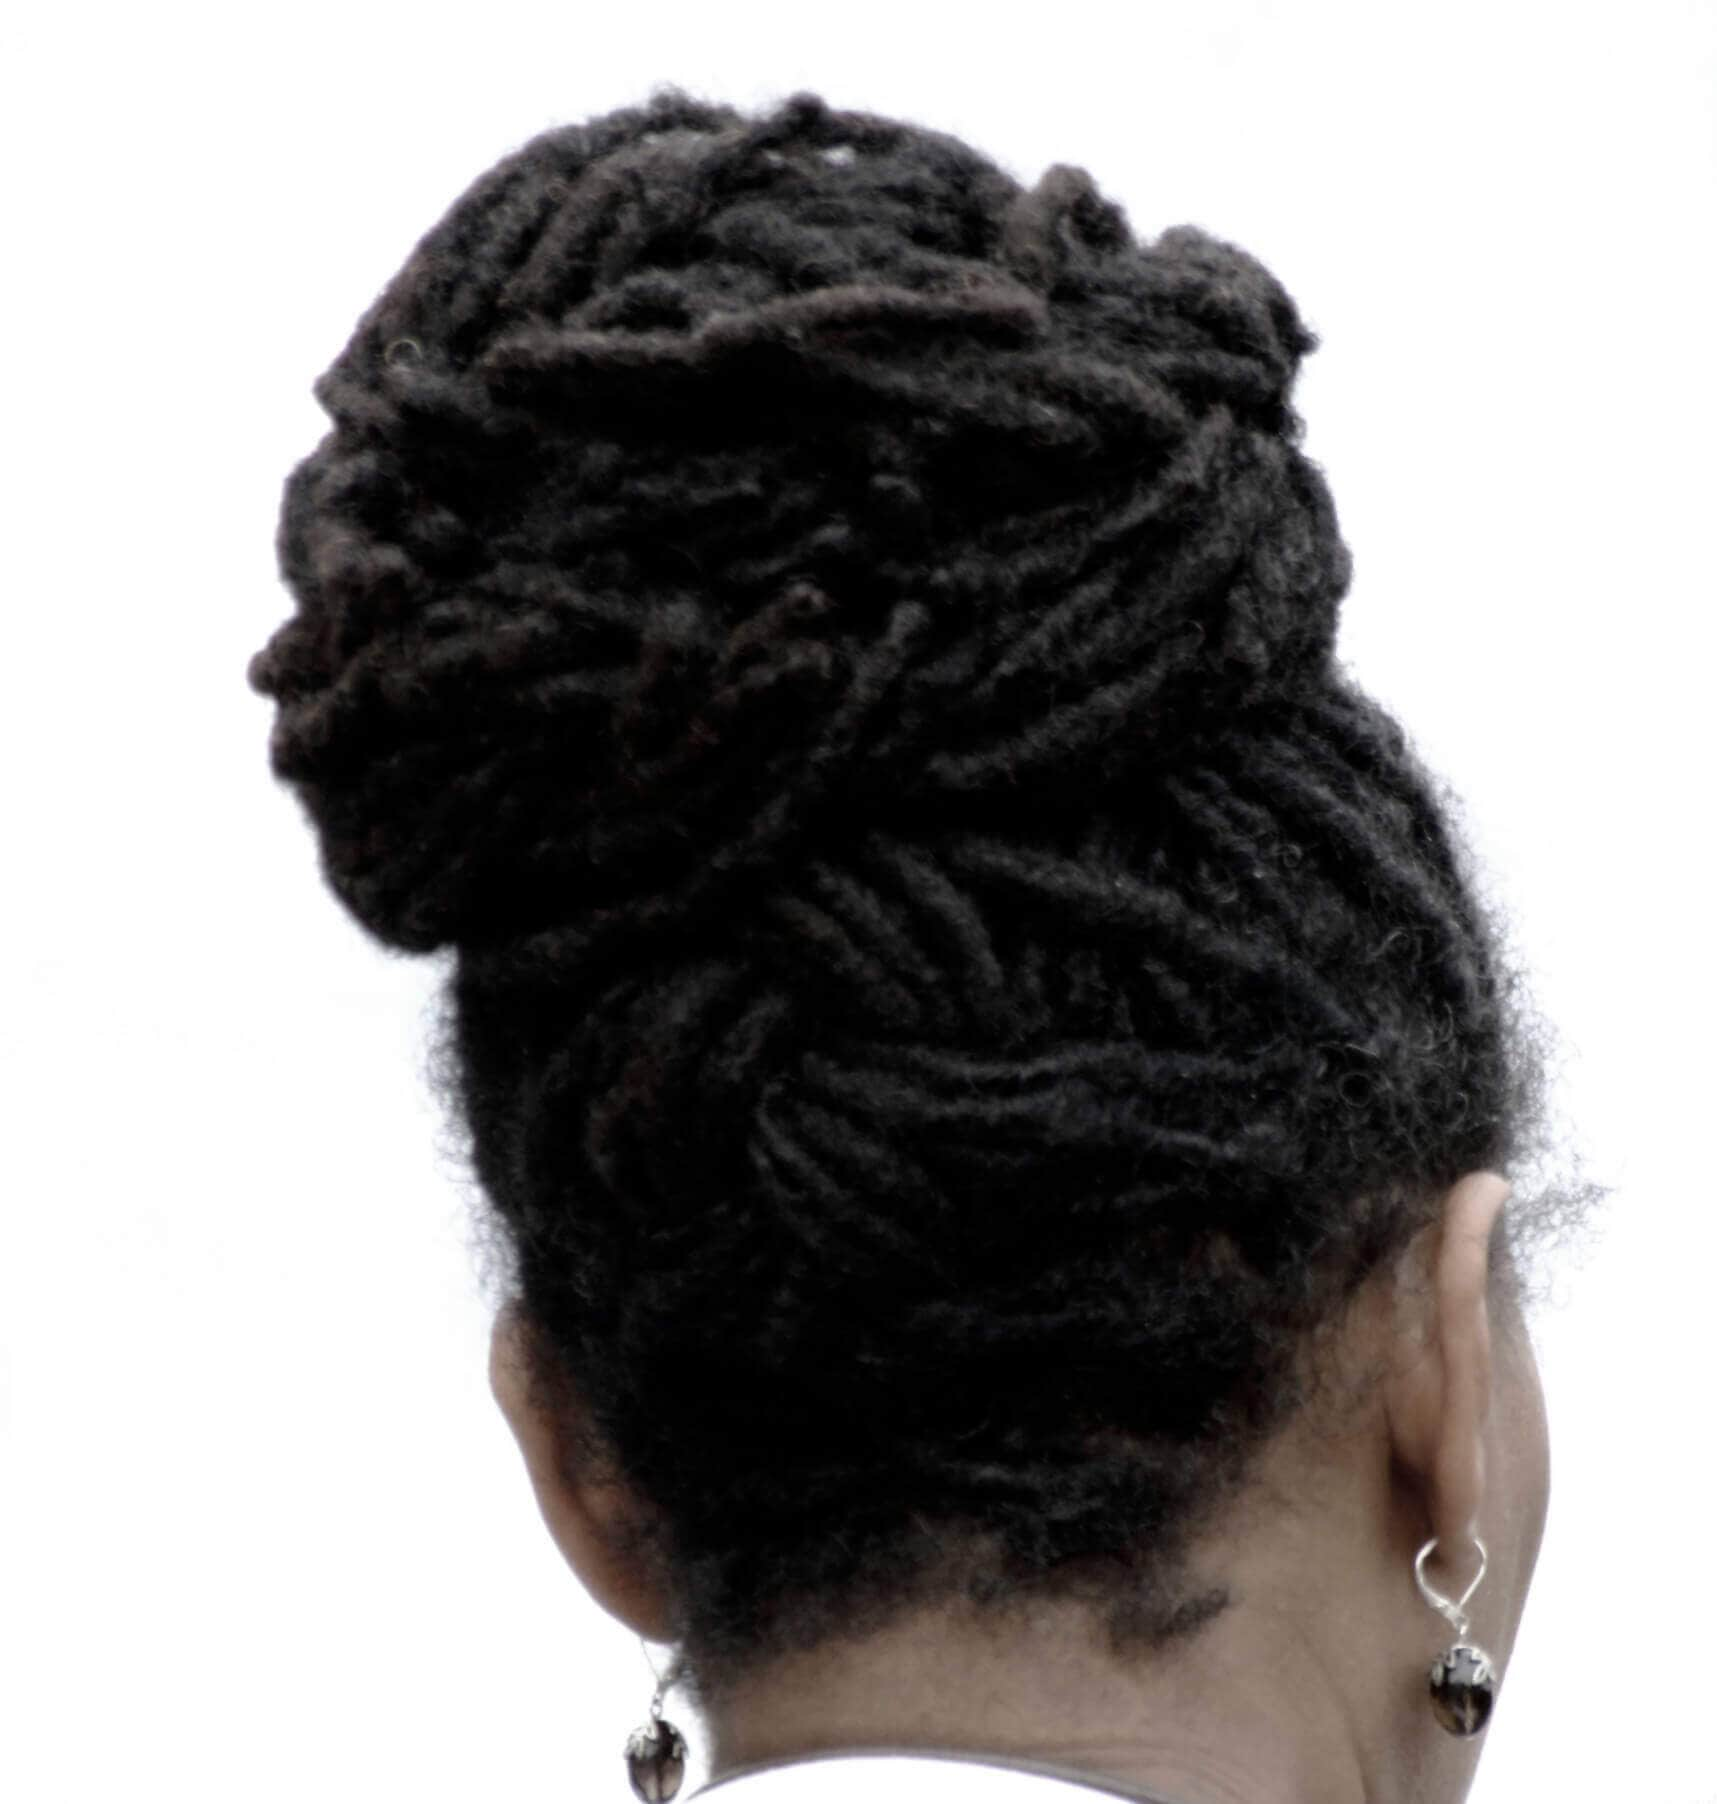 black braided hairstyles like dreadlocks